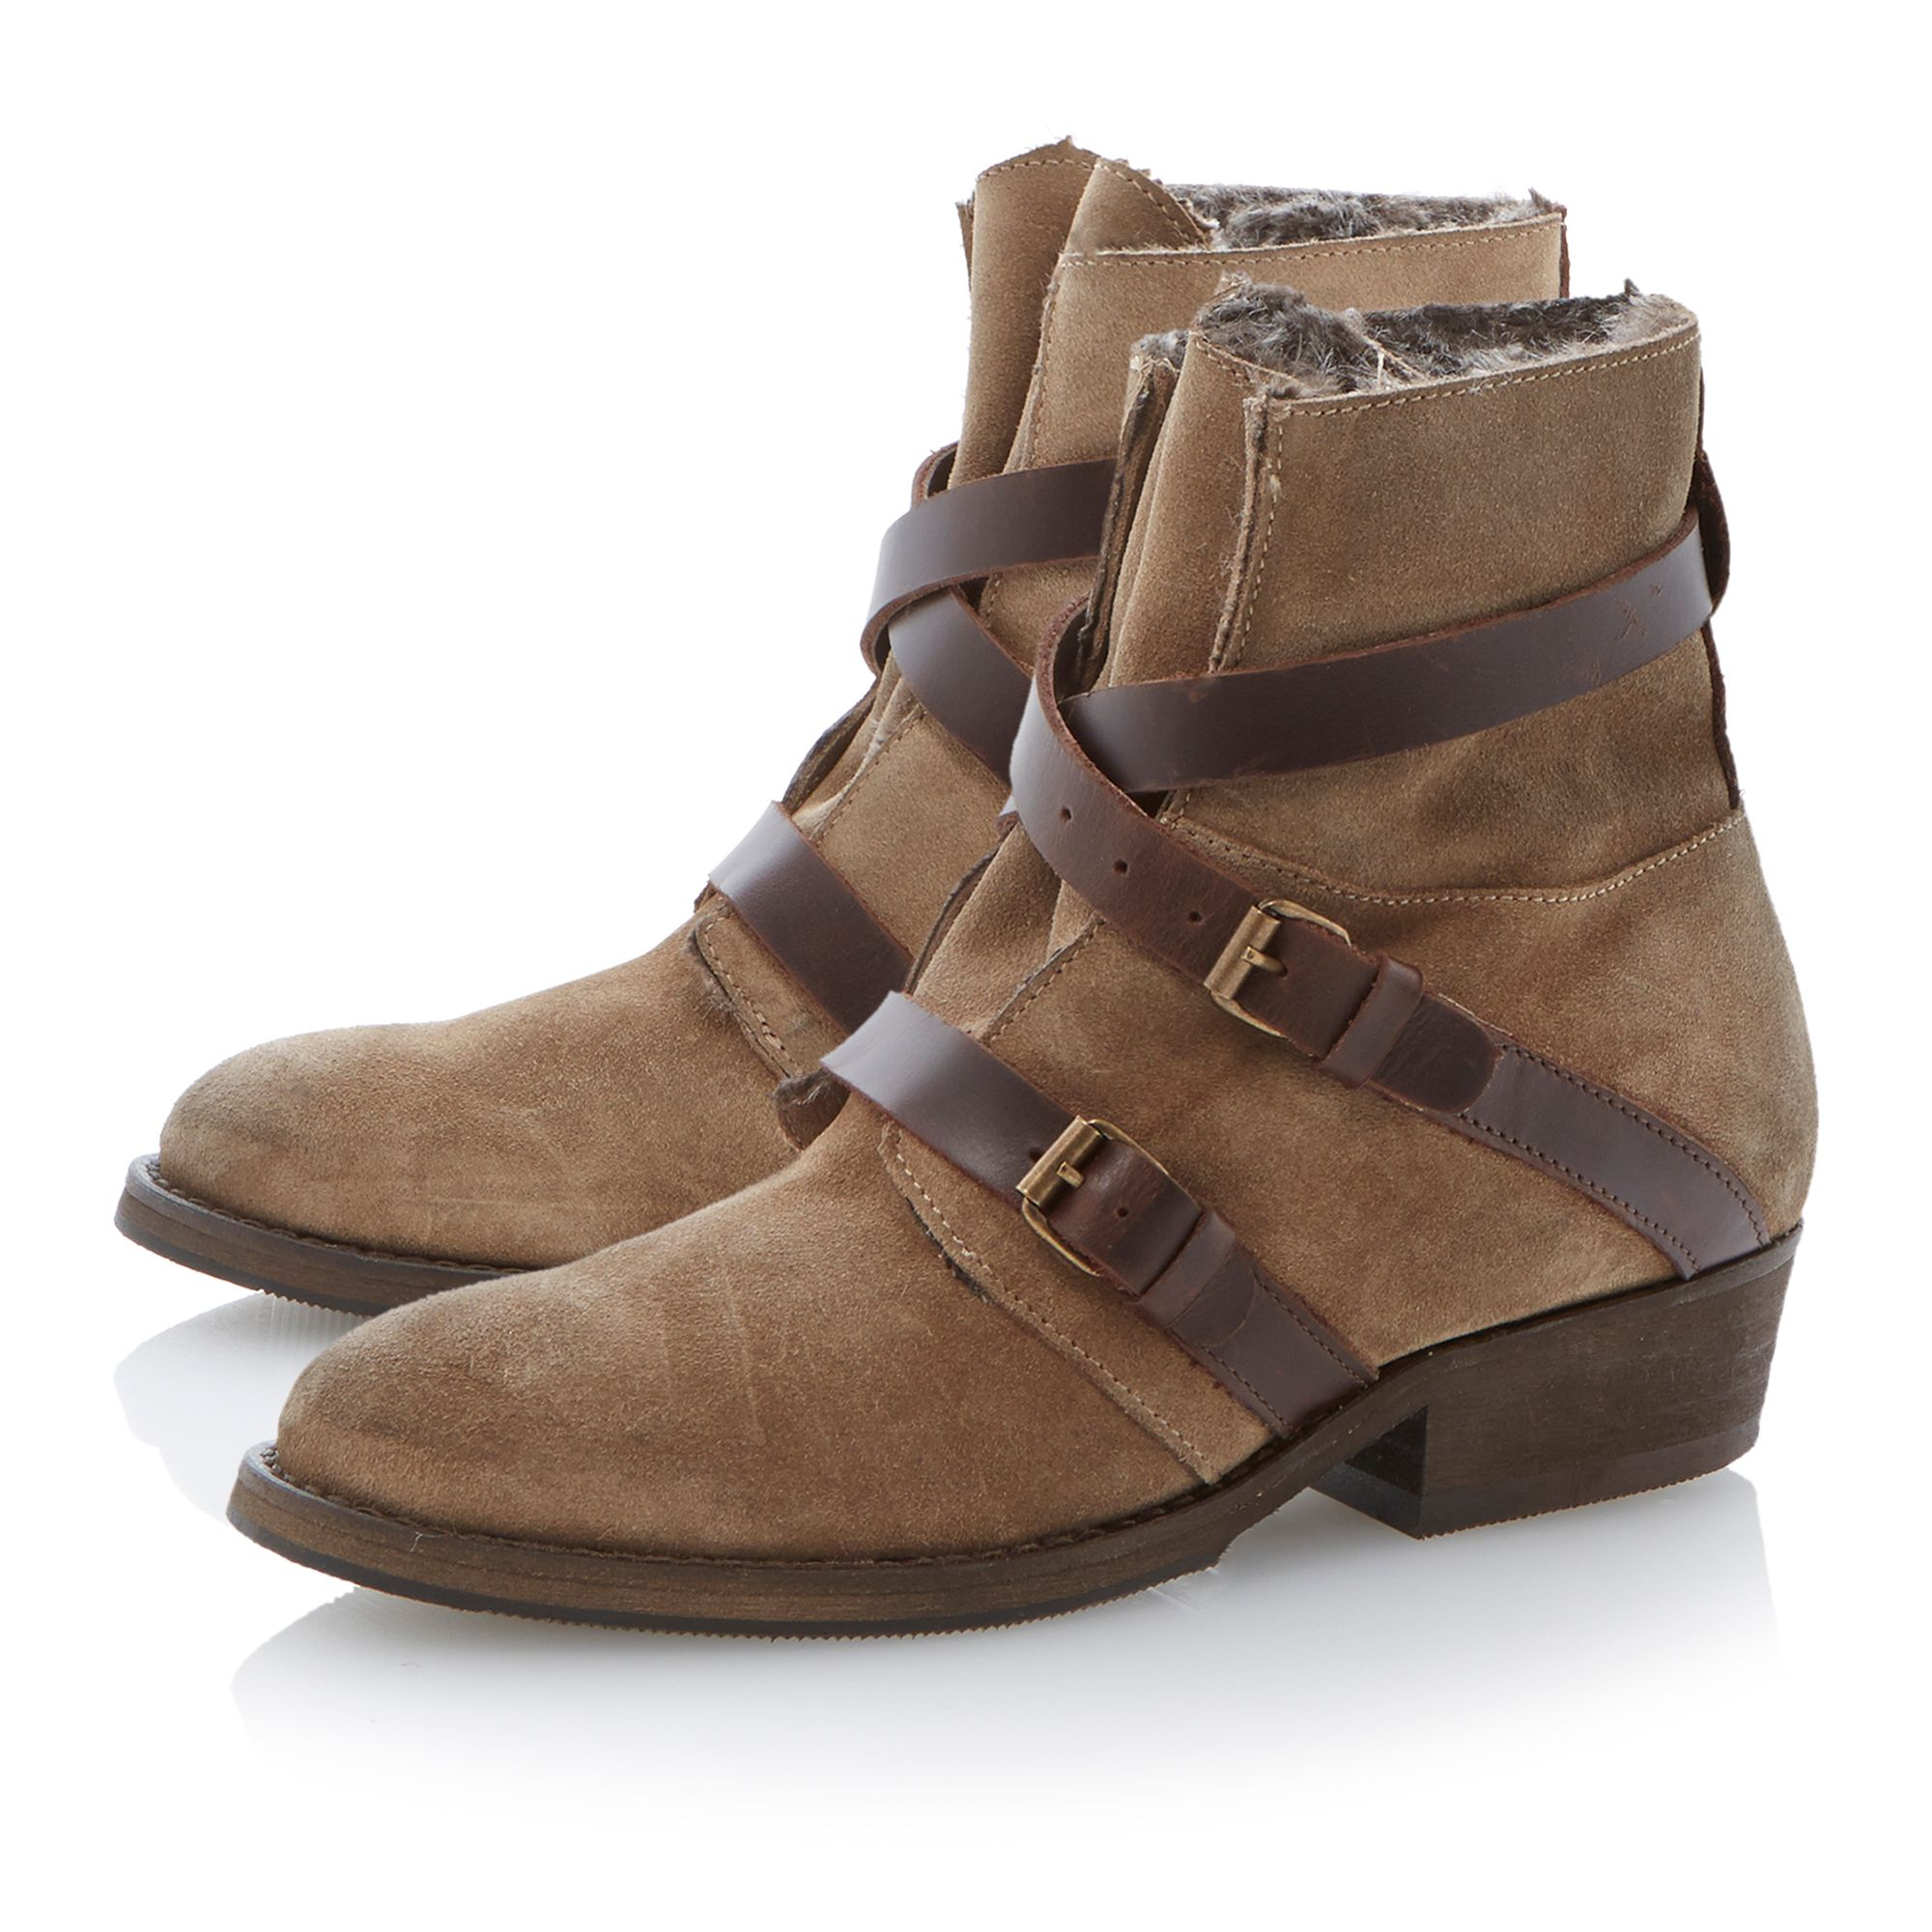 Poncho strap faux fur lined boots